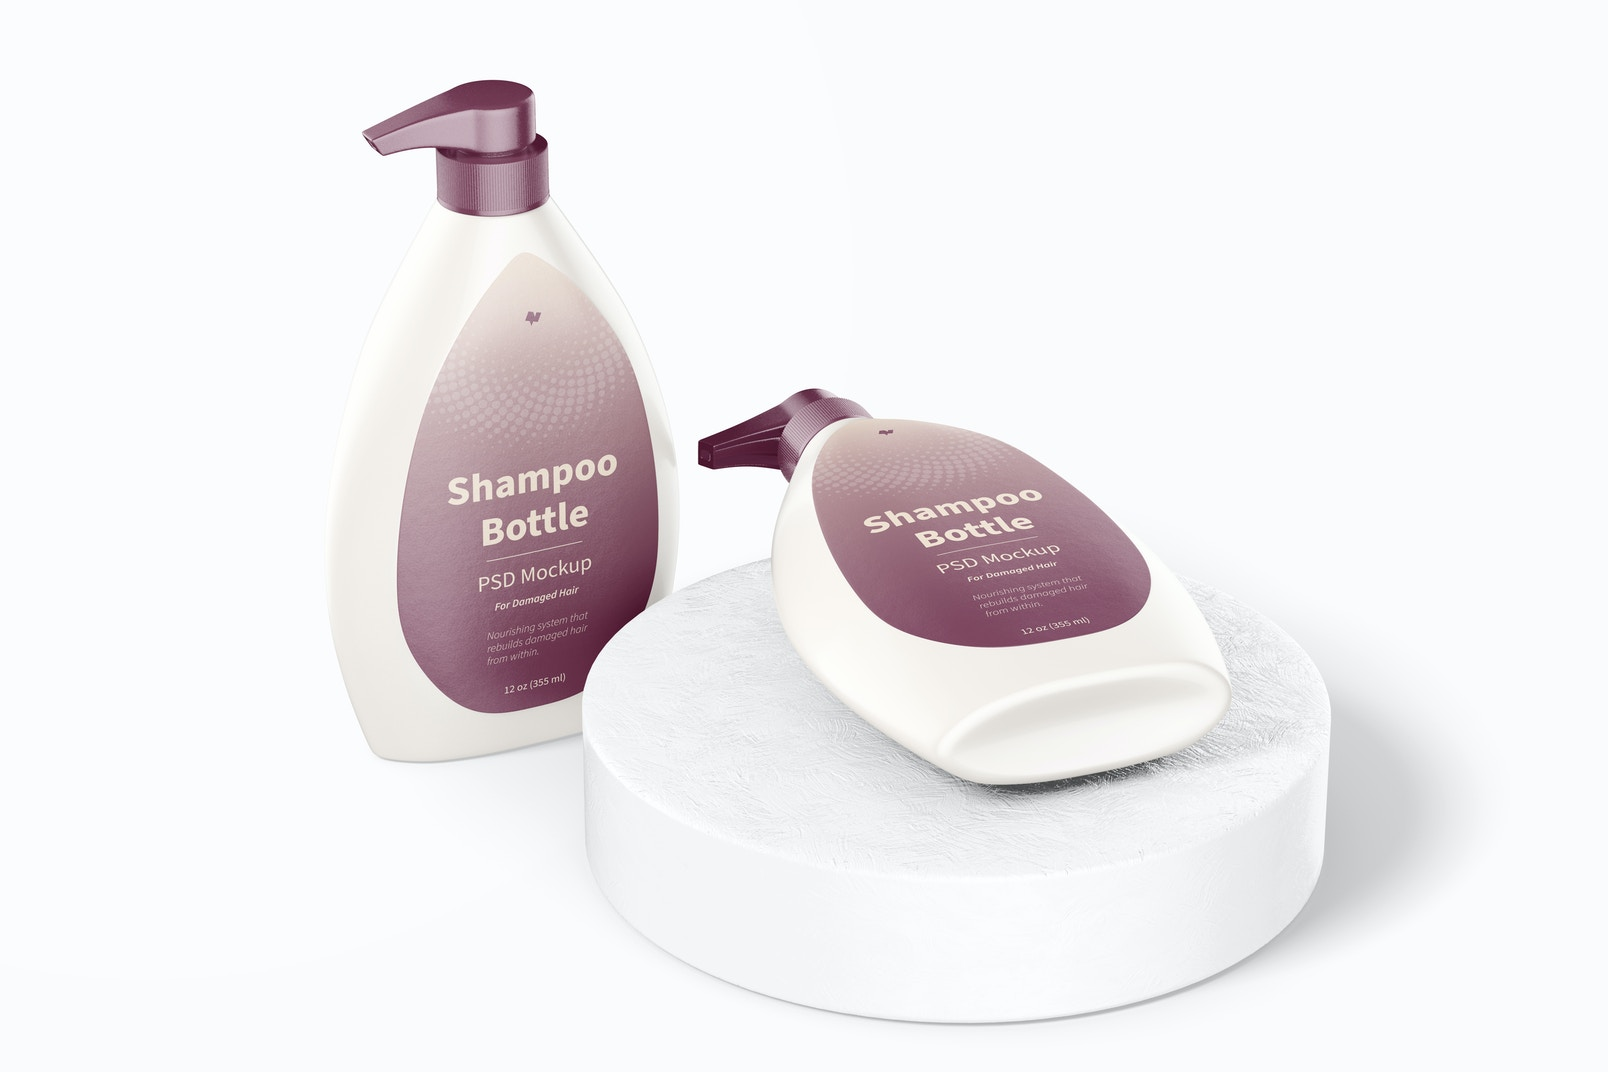 Shampoo Bottle with Pump Mockup, Standing and Dropped